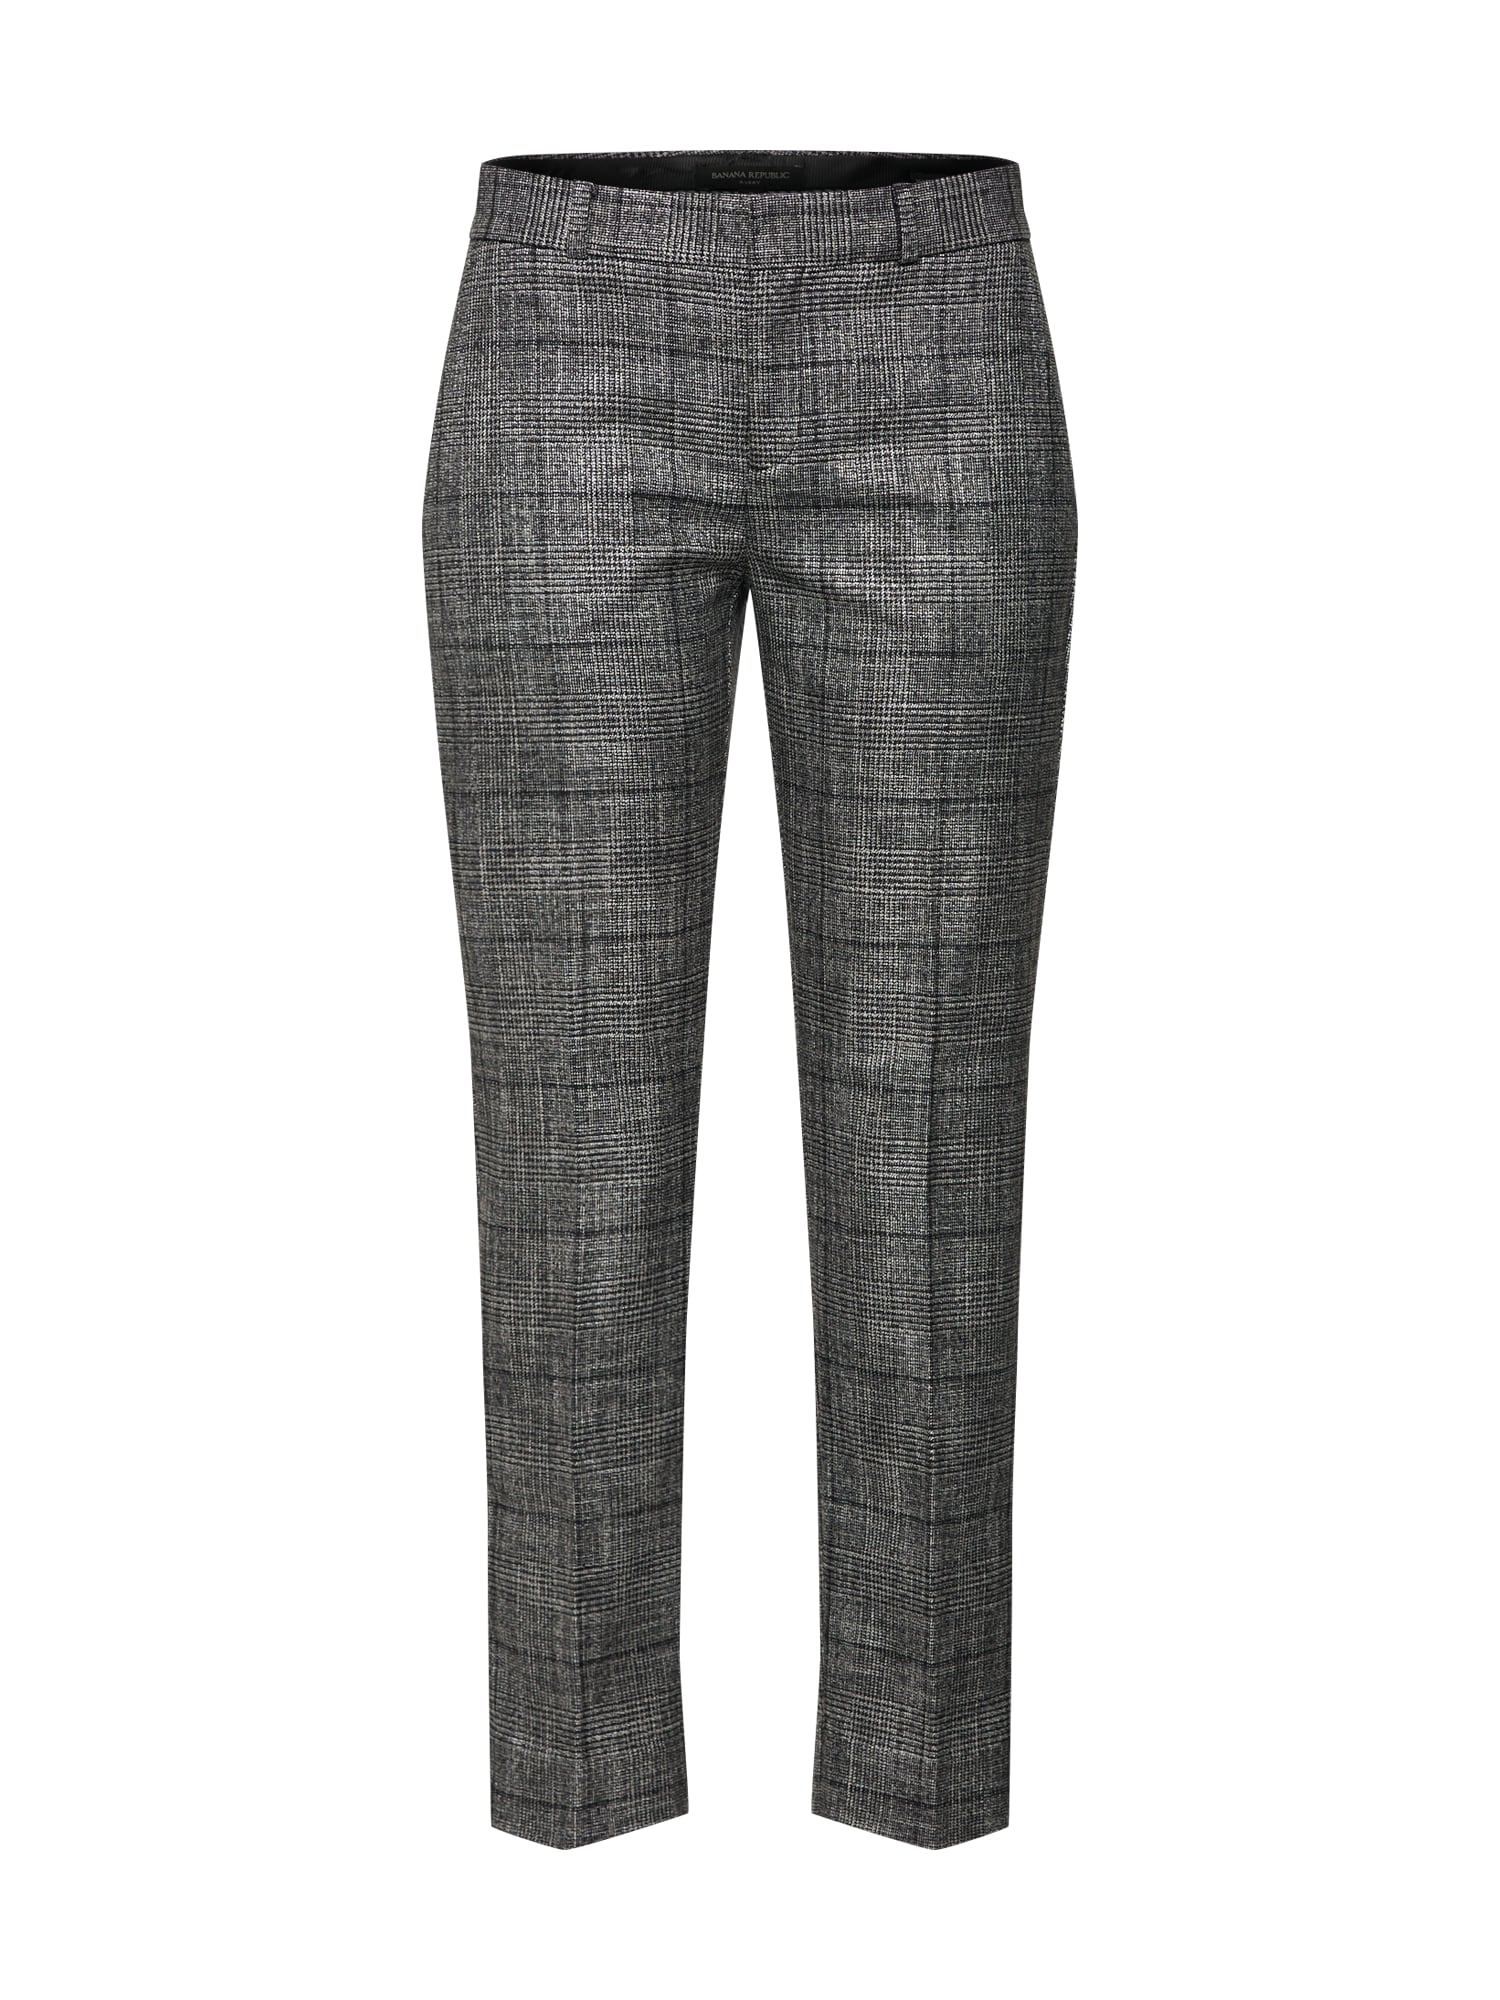 Banana Republic Kelnės su kantu 'AVERY TEXTURED MENSWEAR PLAID' pilka / juoda